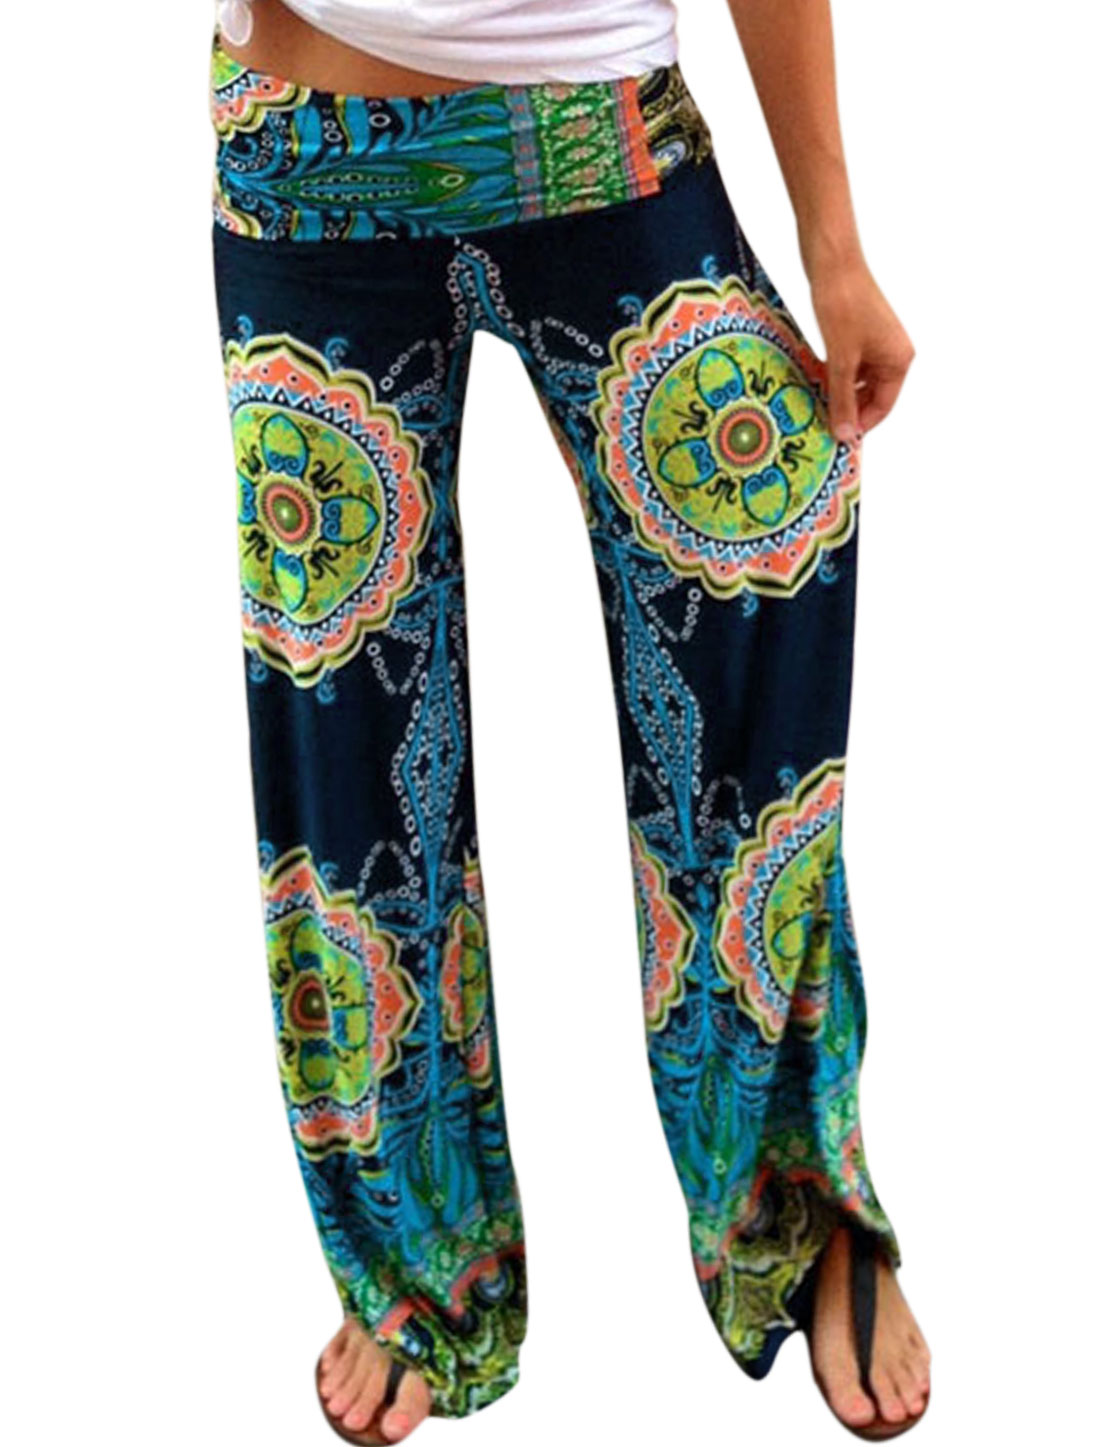 Women Tribal Aztec Printed Wide Leg Fold Over Waist Palazzo Pants Muliticolor M